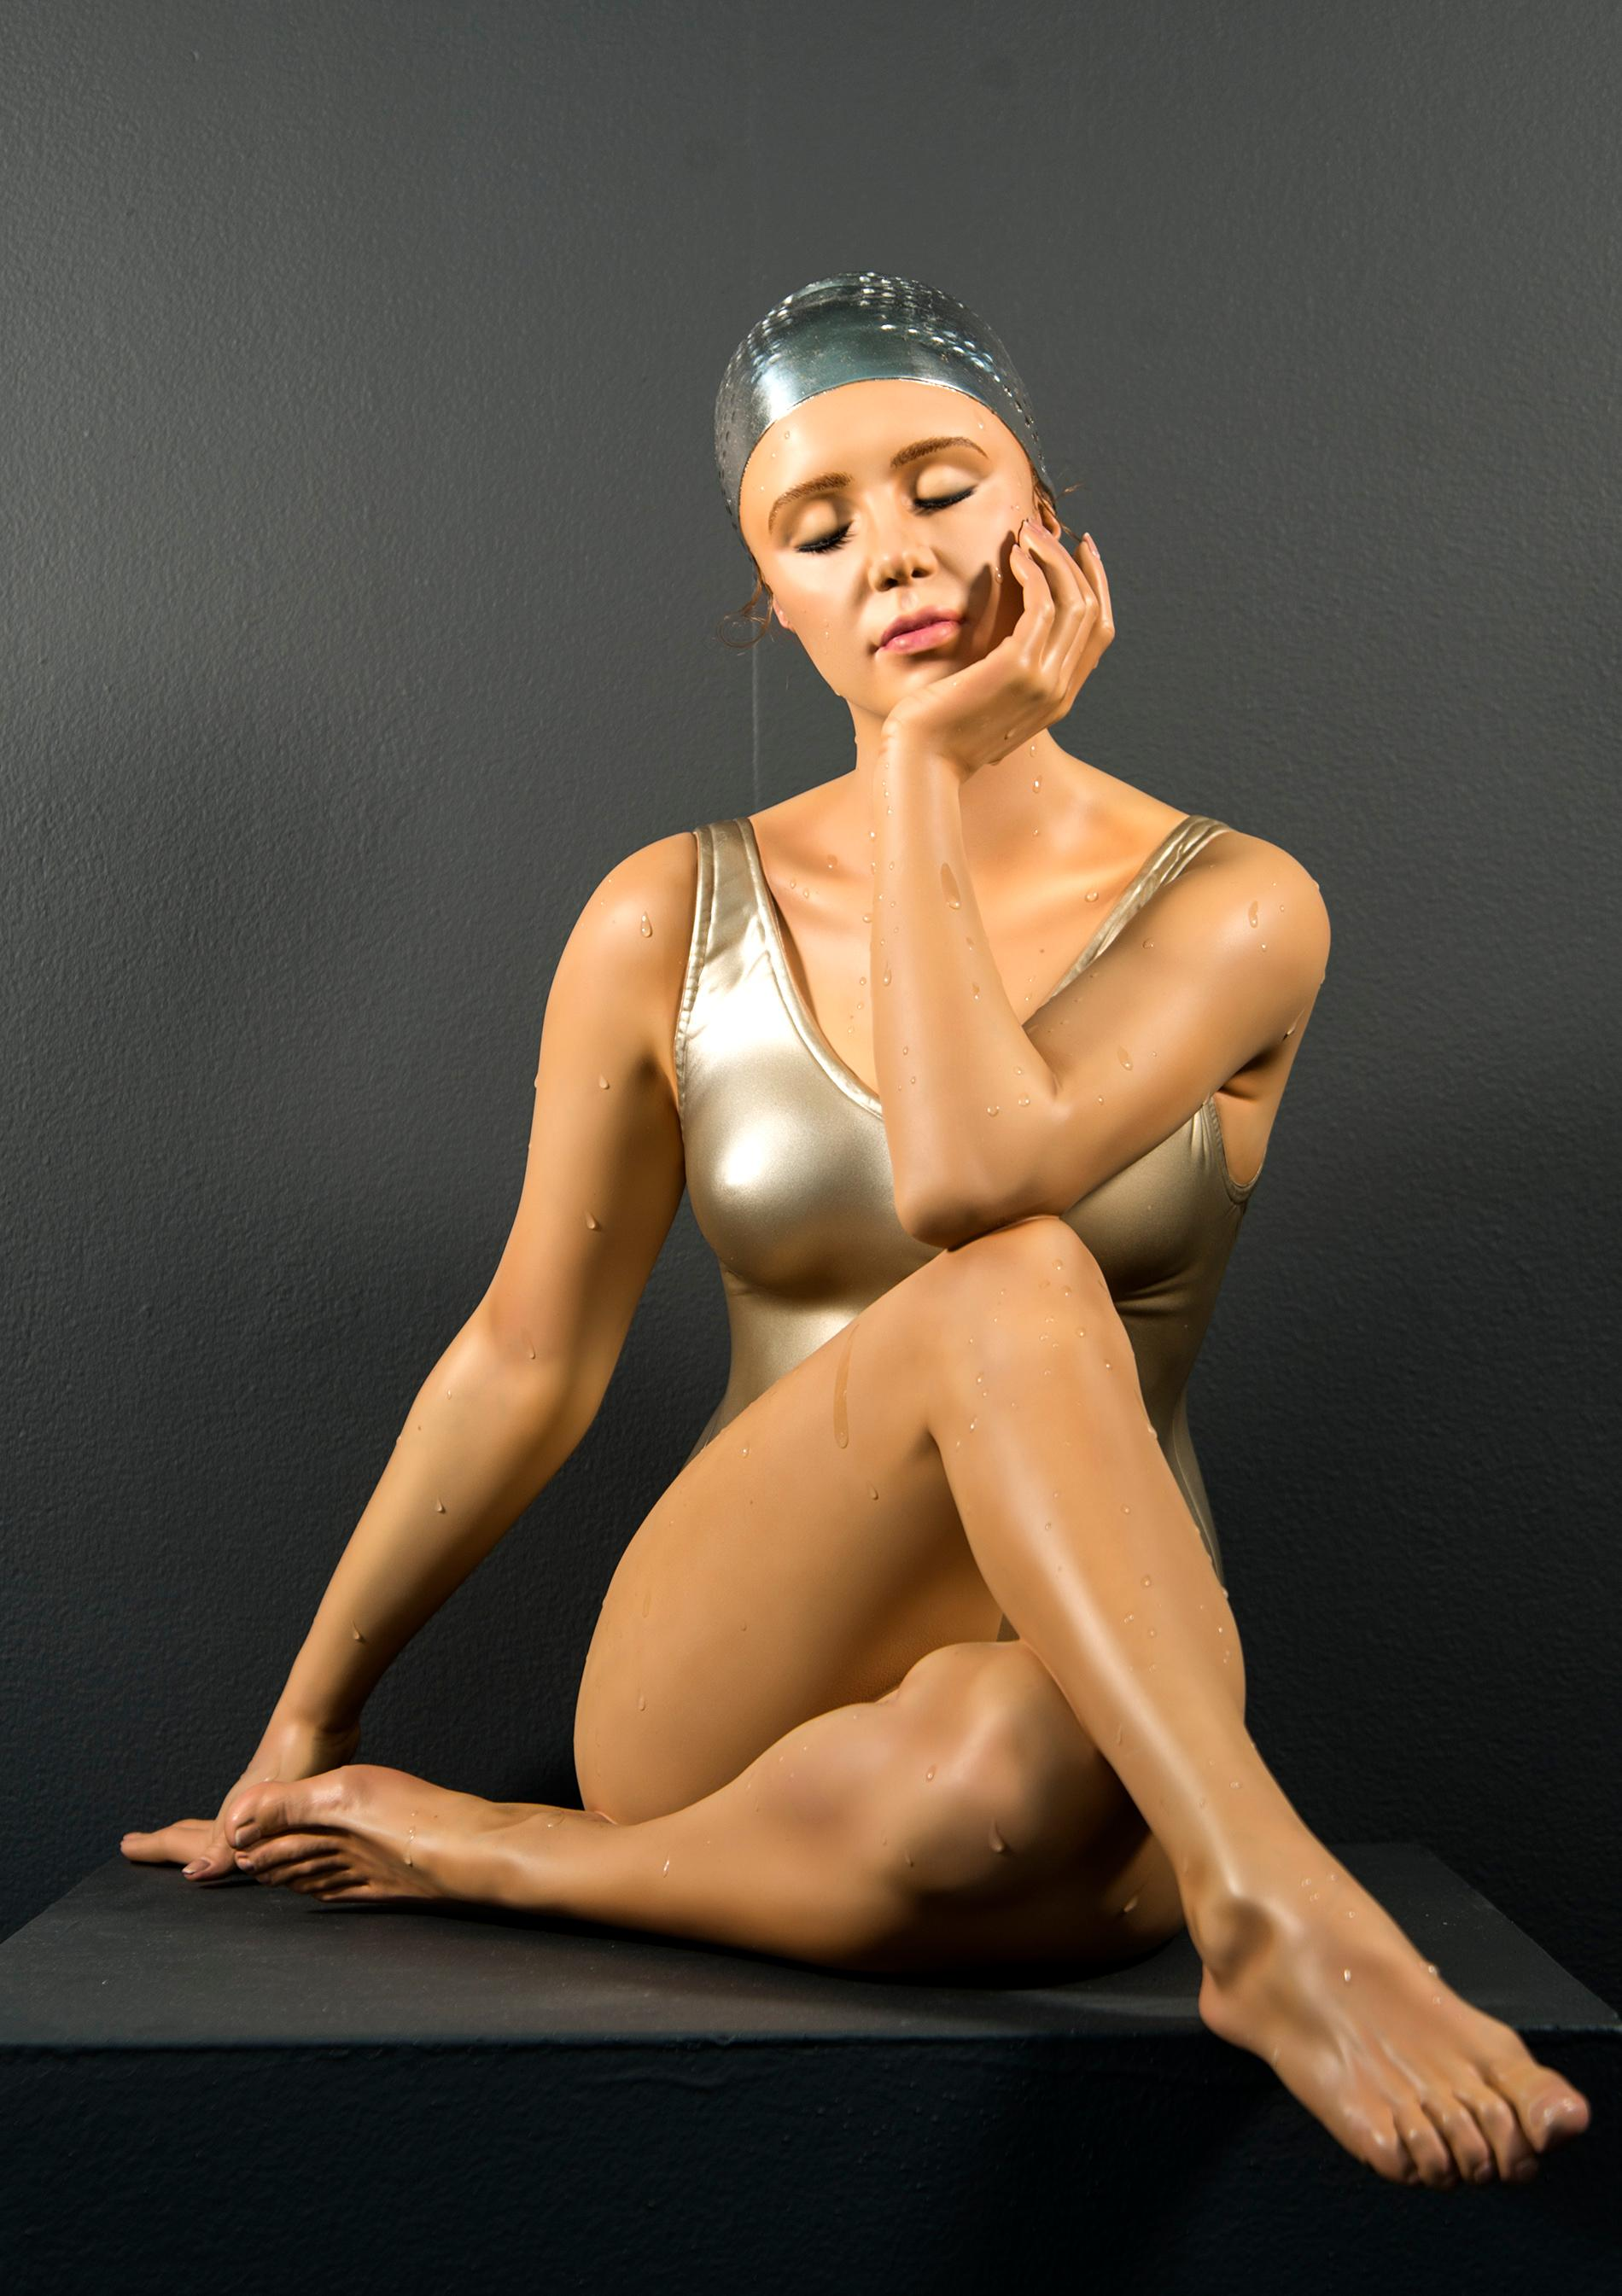 Table-Top Contemplation 3/8 - hyperrealism, female swimmer, cast resin sculpture